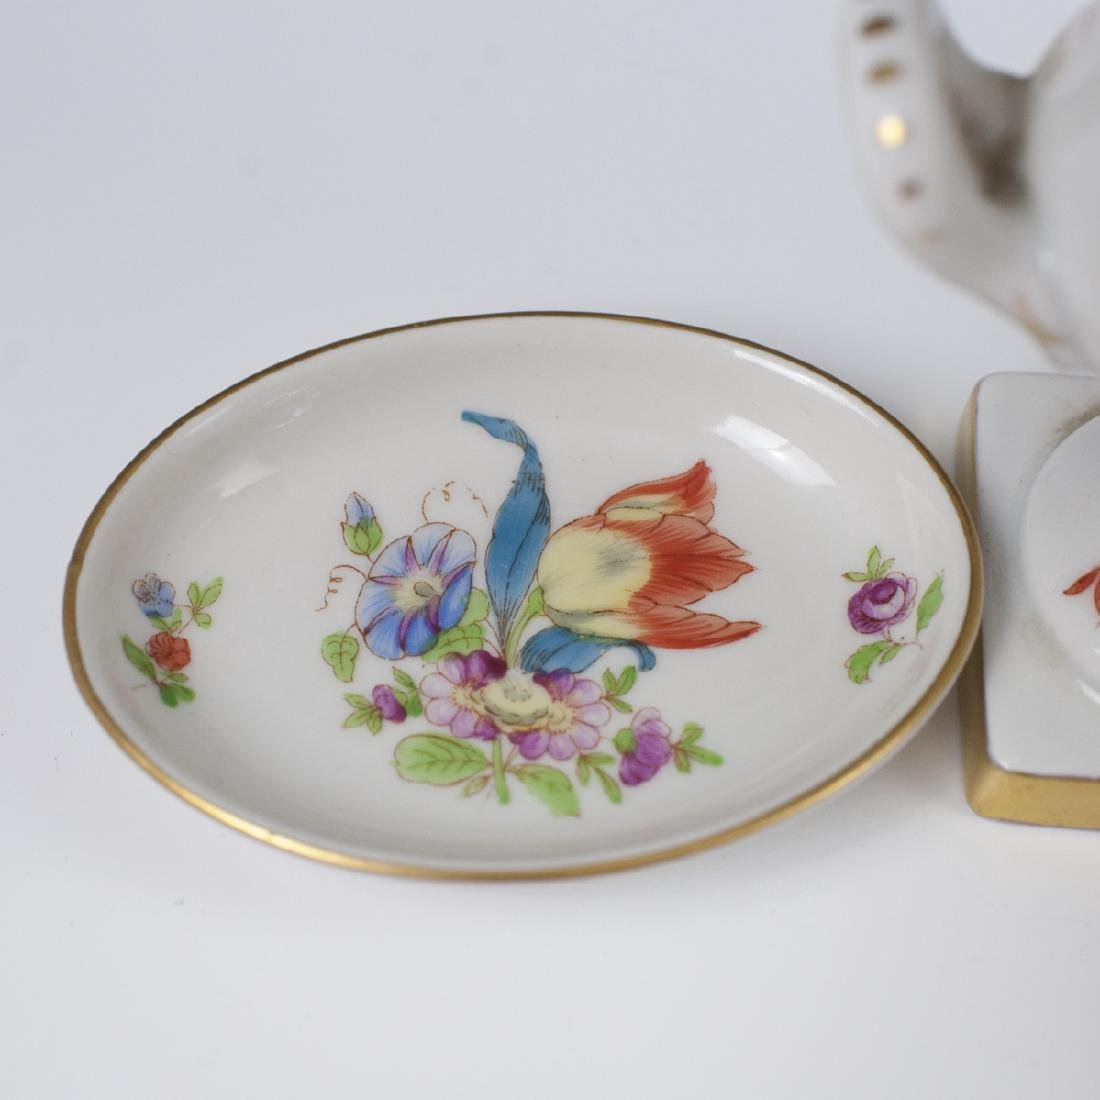 Herend Porcelain Set - 4